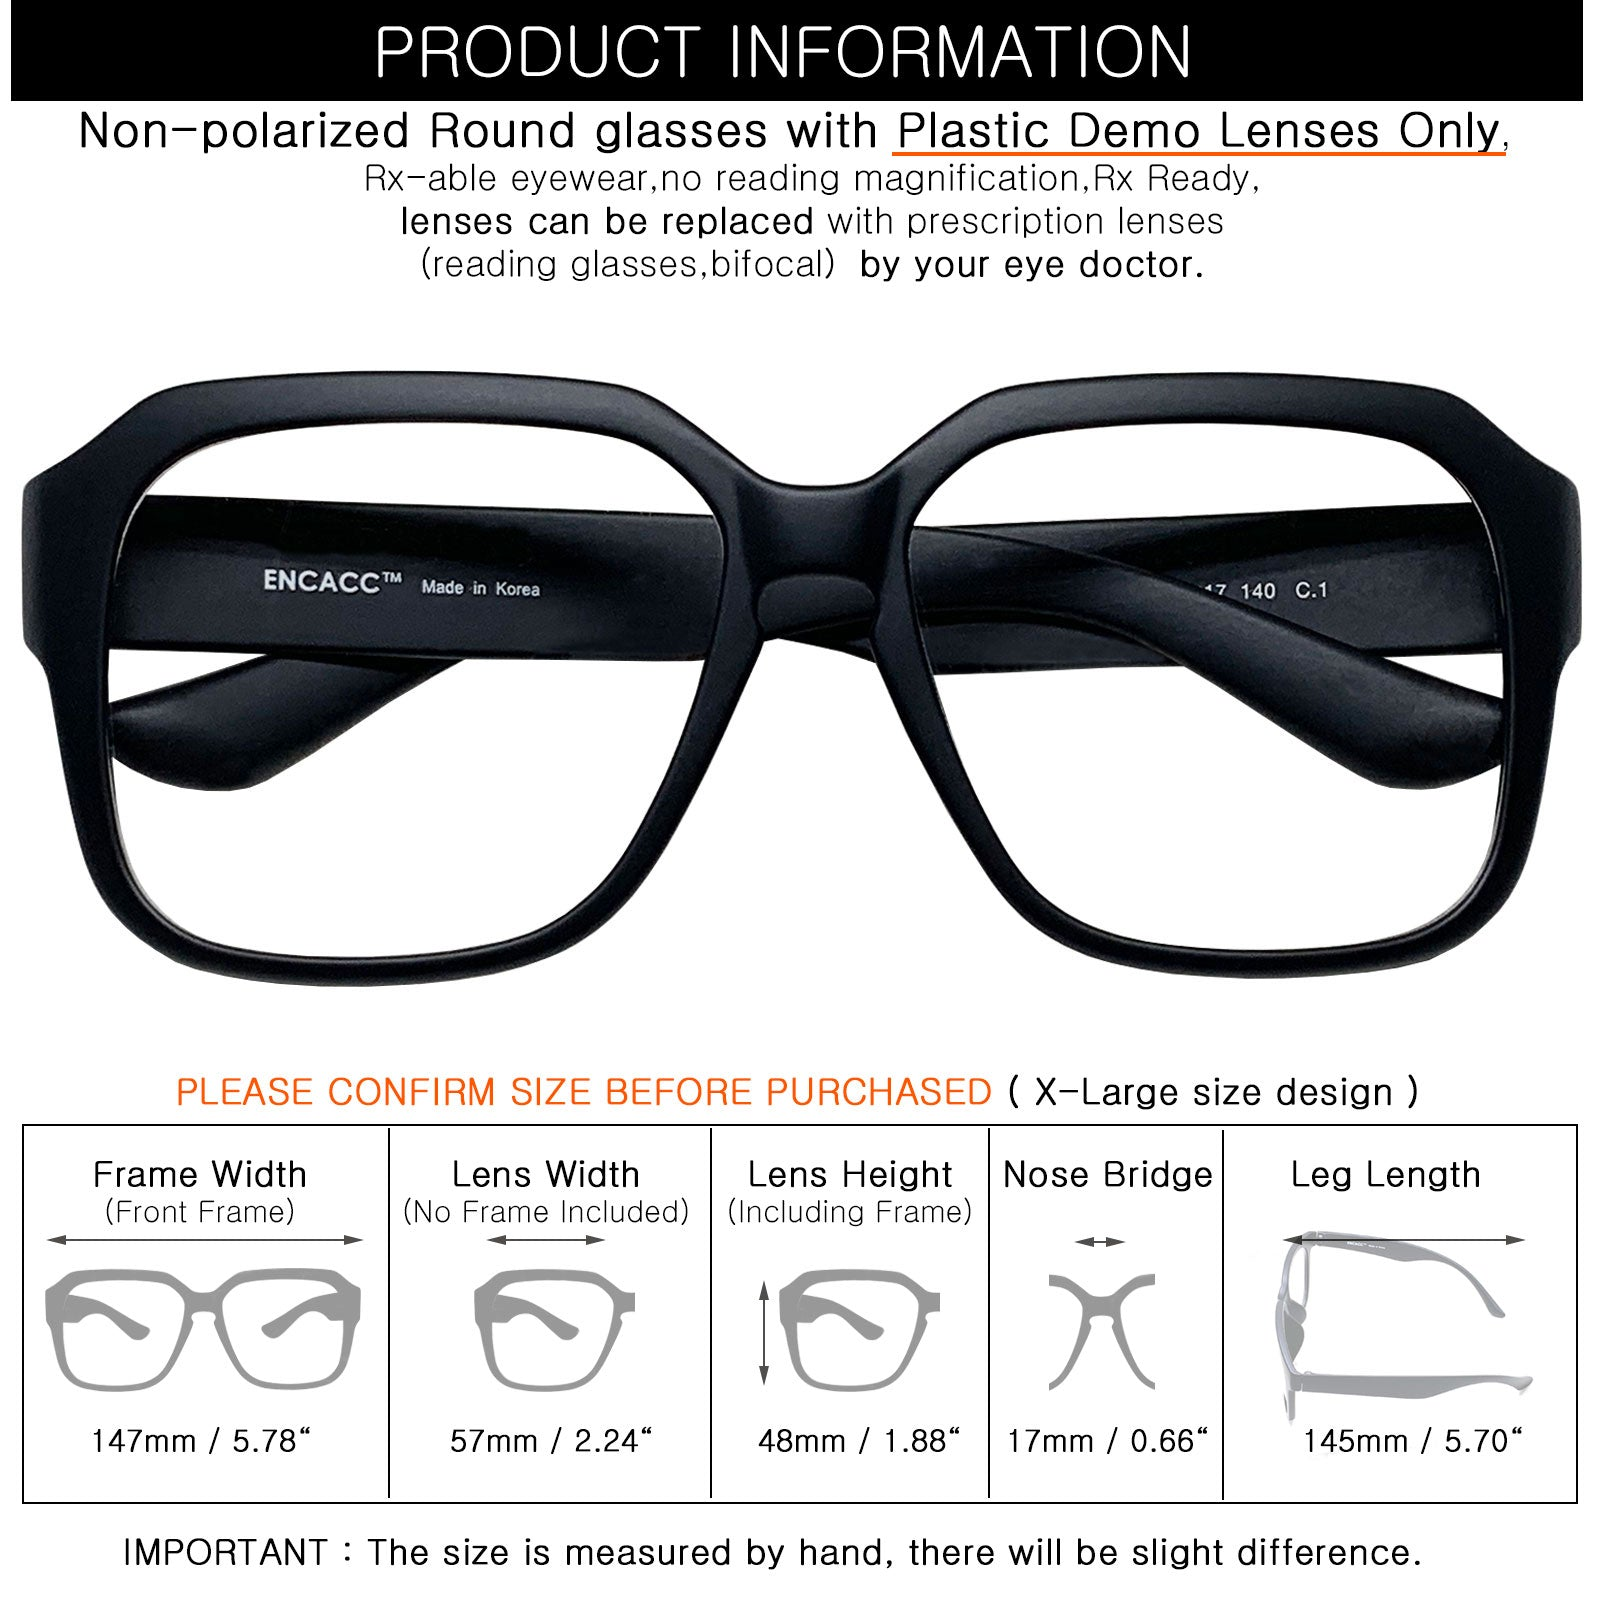 ENCACC Oversized glasses frames Eye-wear Frame TR90 Non Prescription Eyeglasses Matt Black 343 - ENCACC